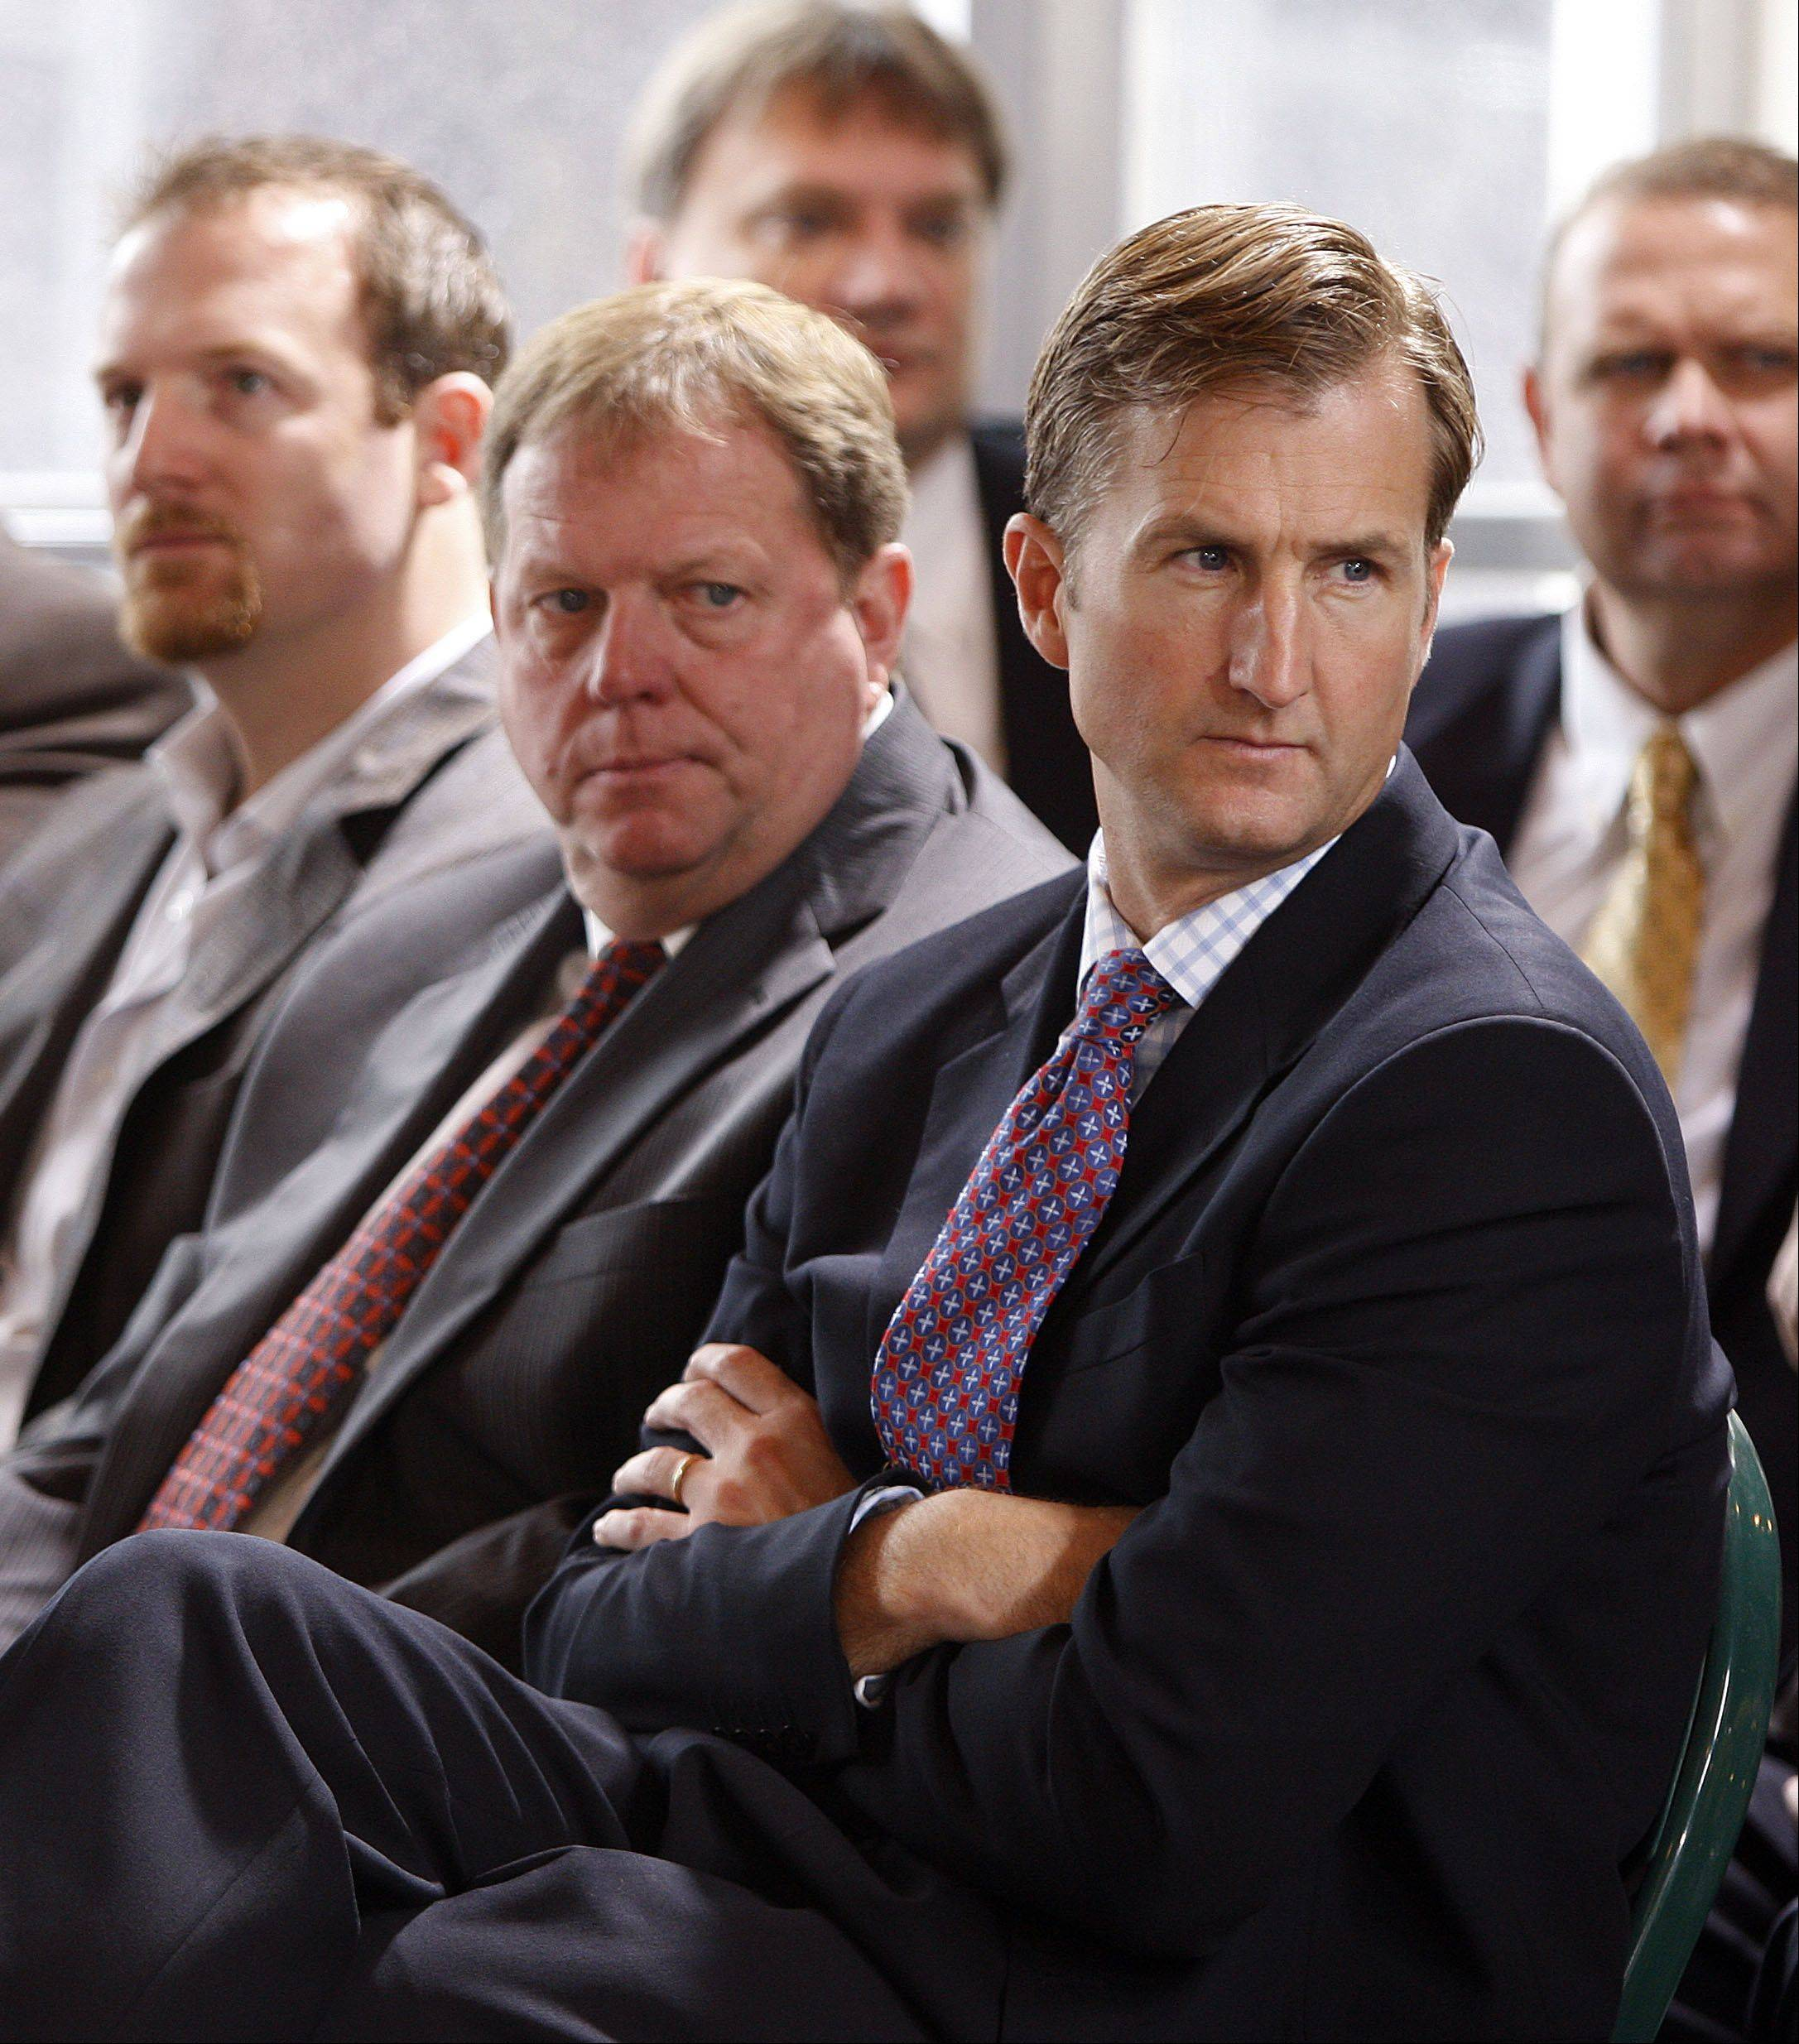 Associated PressChicago Cubs player Ryan Dempster, left, general manager Jim Hendry, center, and chairman Crane Kenney listen to new team owner Tom Ricketts during a news conference at Wrigley Field on Friday, Oct. 30, 2009, in Chicago.